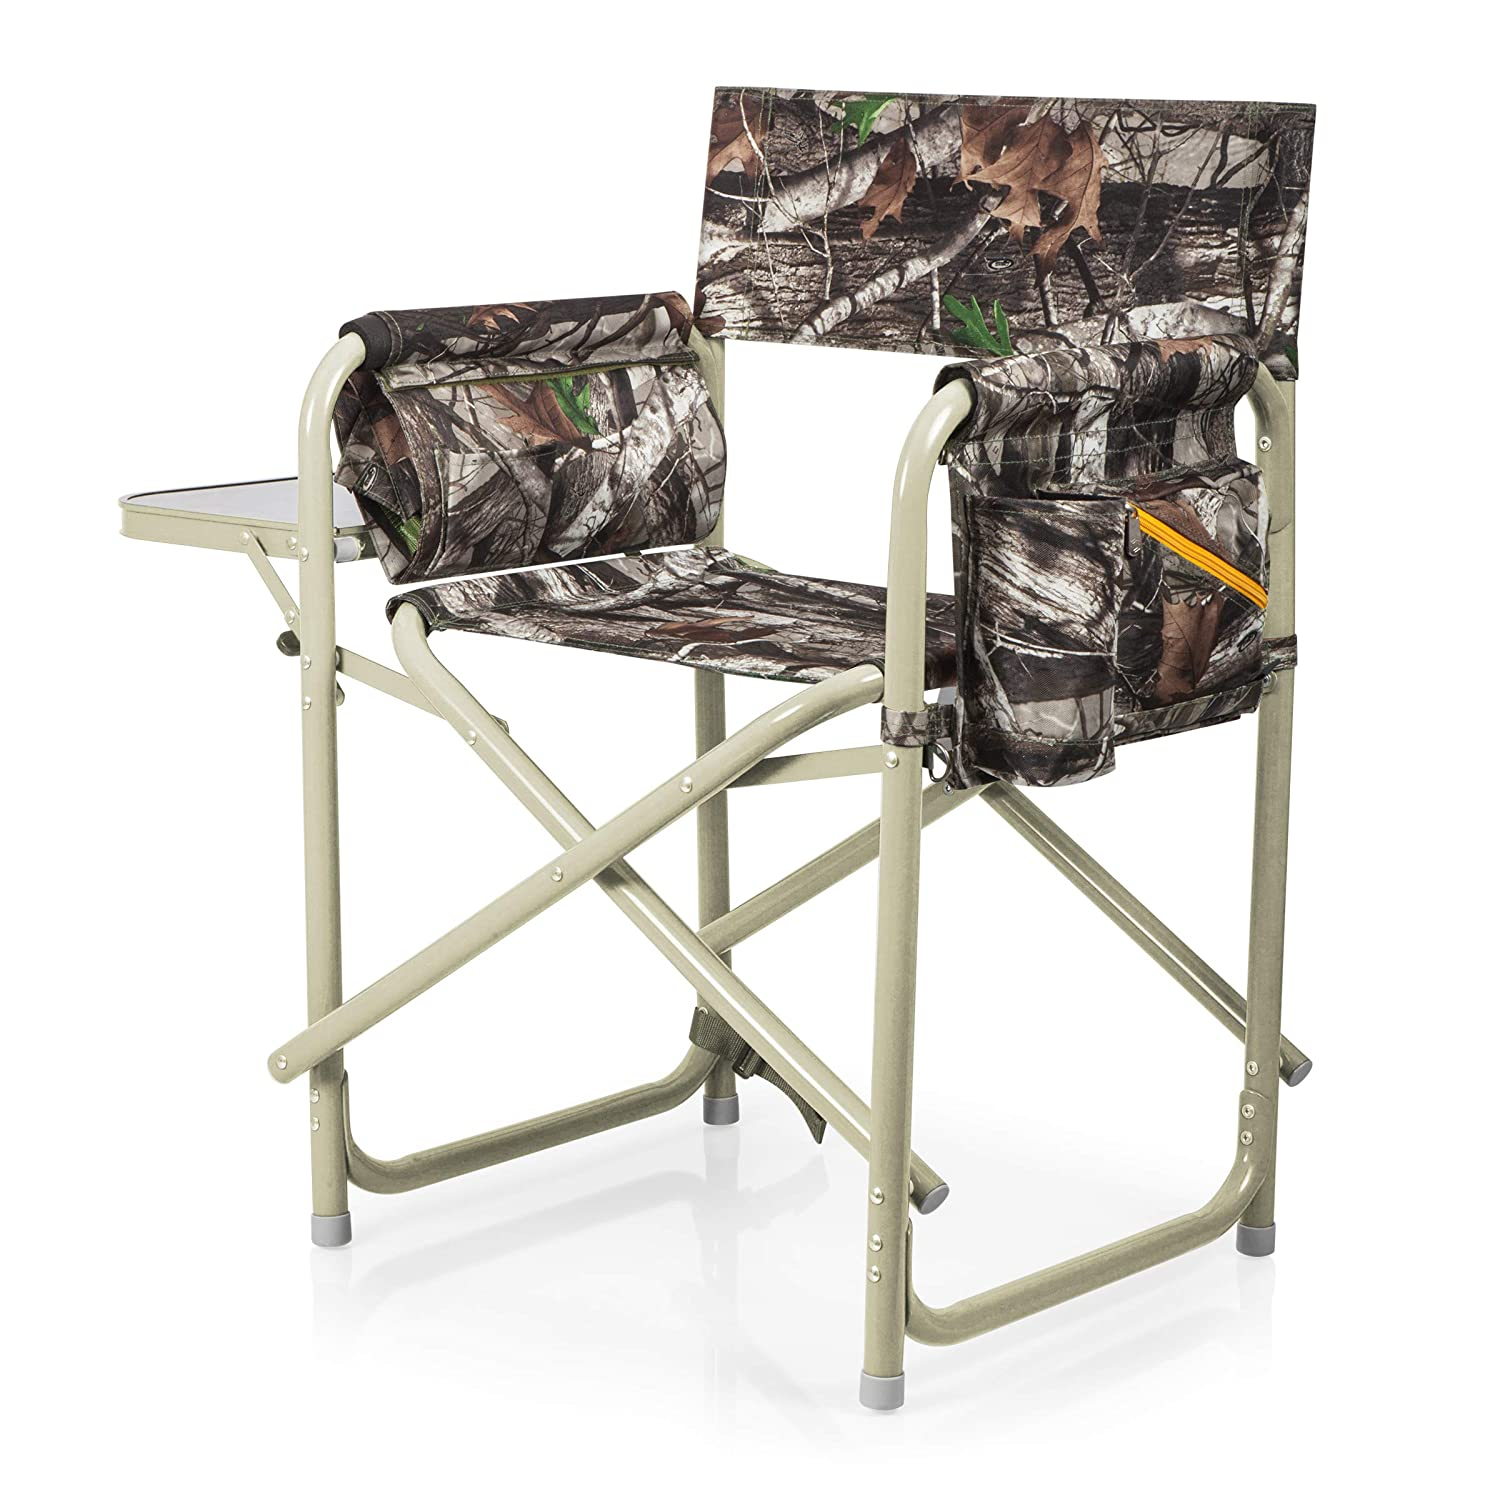 Ordinaire Amazon.com : ONIVA   A Picnic Time Brand Outdoor Directors Folding Chair,  Camouflage : Sports U0026 Outdoors